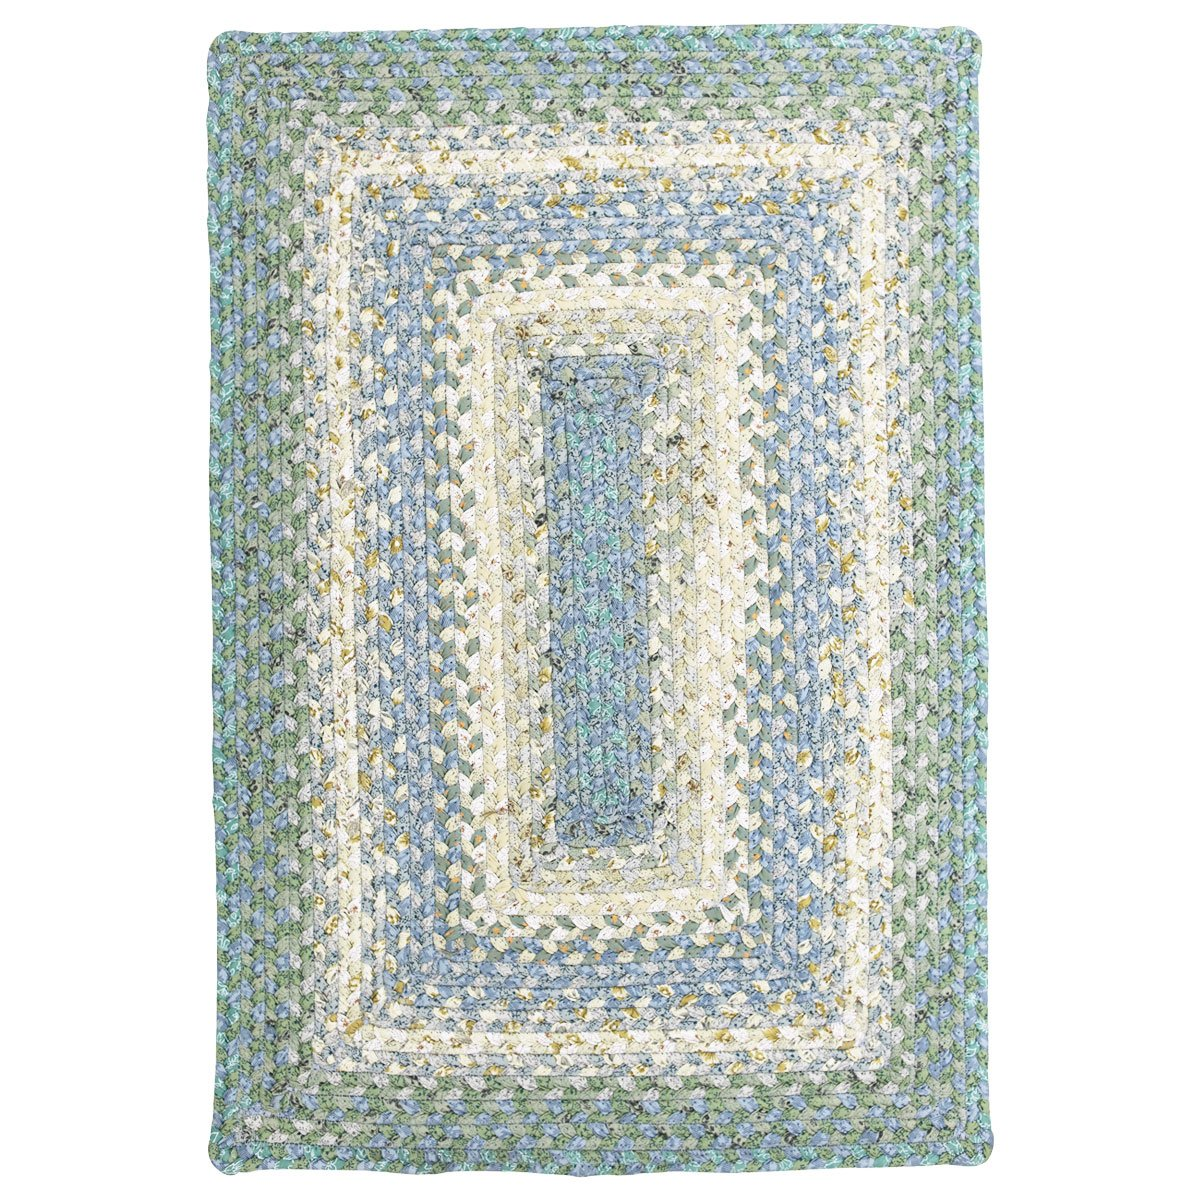 Homespice Rectangular Cotton Braided Rugs, 4-Feet by 6-Feet, Baja Blue